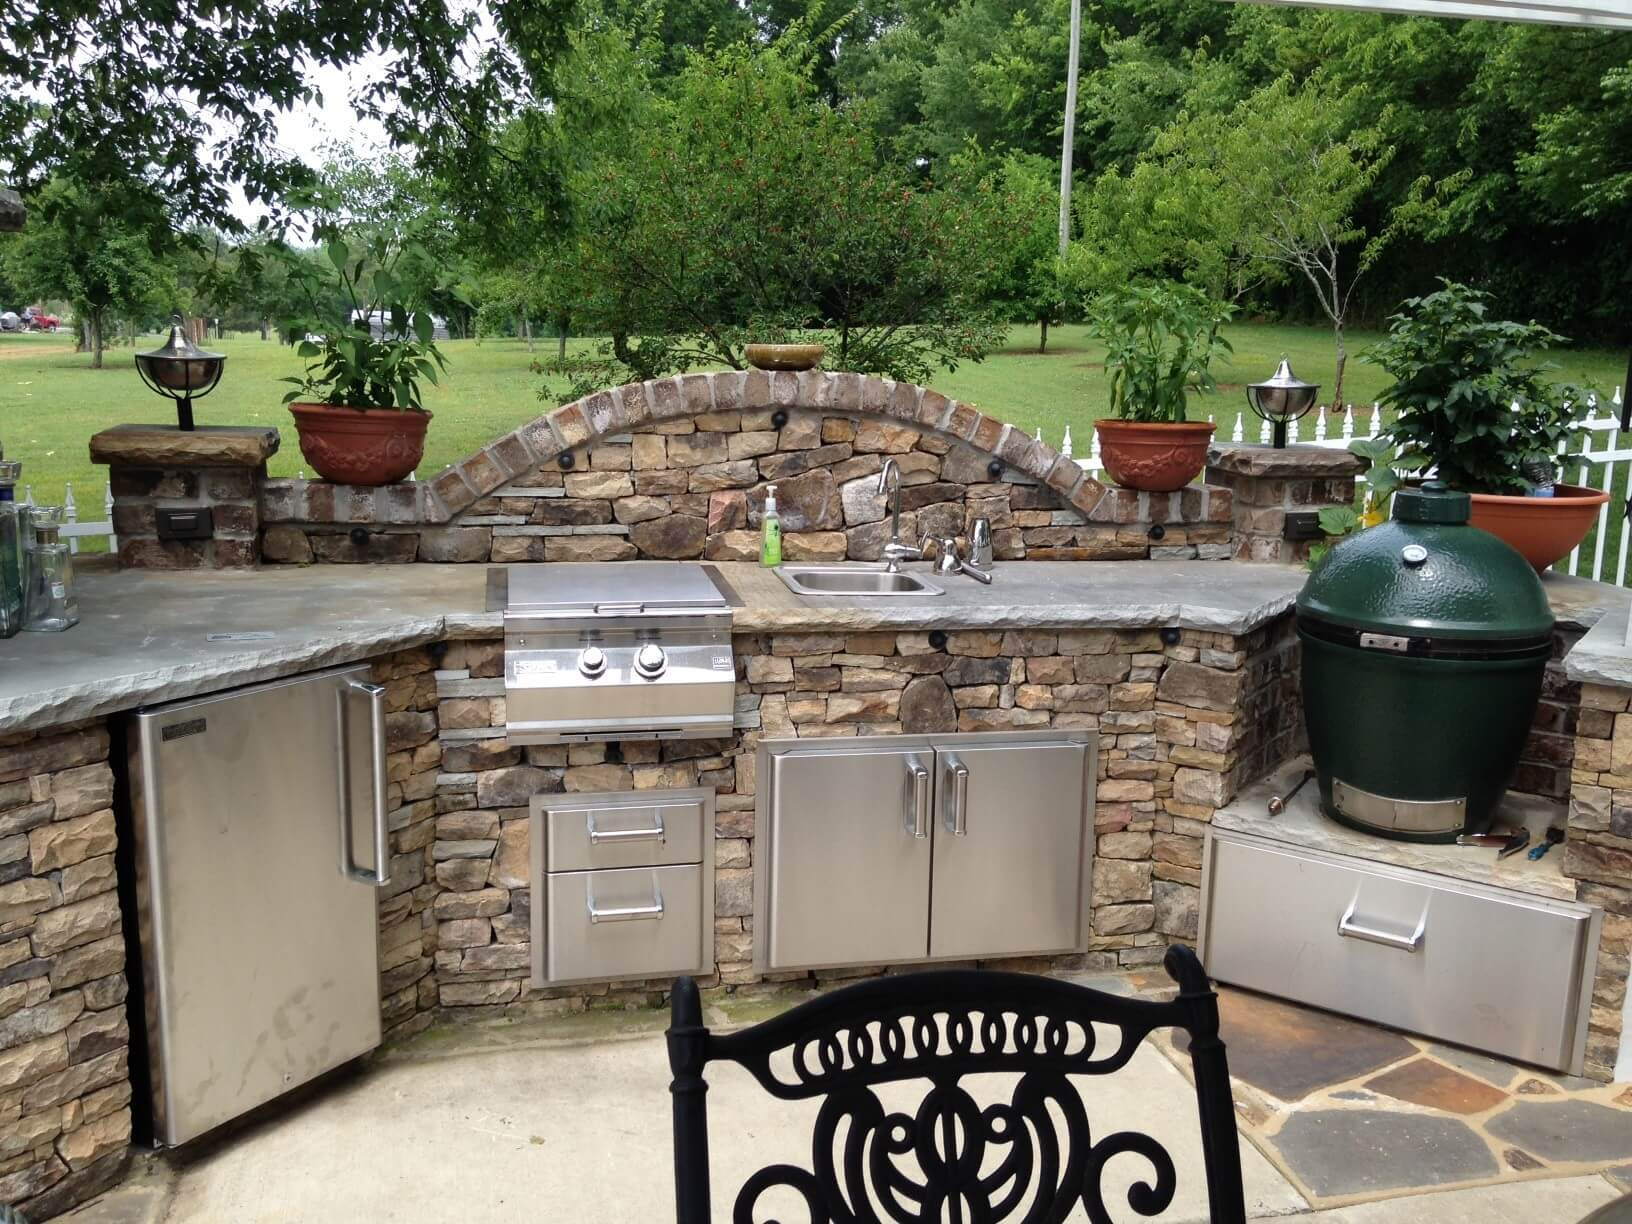 Best ideas about Patio Kitchen Ideas . Save or Pin 17 Functional and Practical Outdoor Kitchen Design Ideas Now.